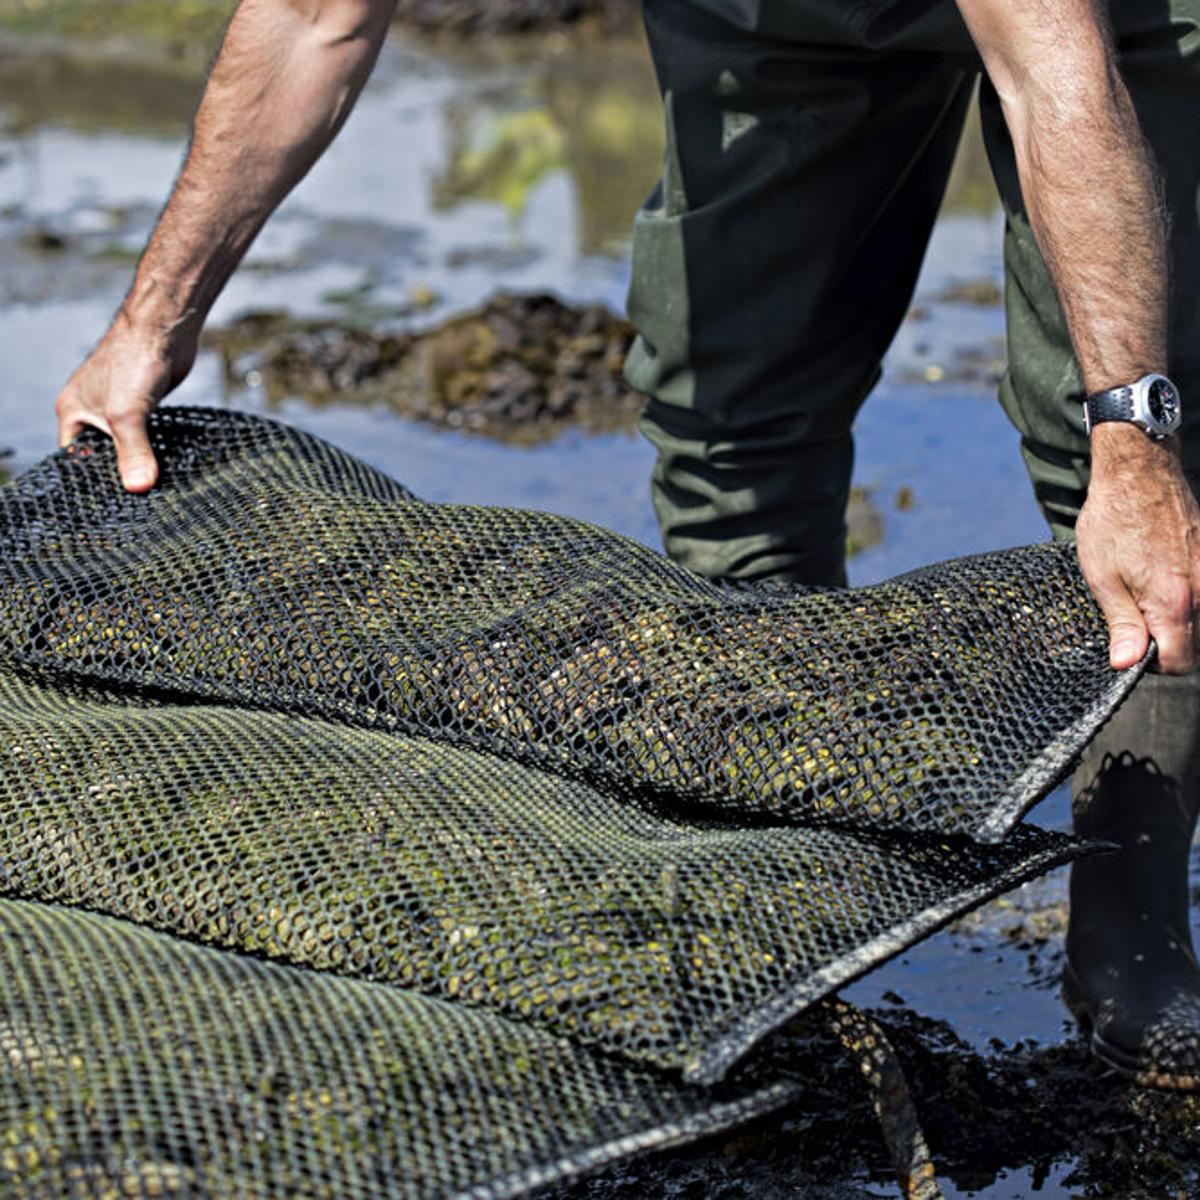 Texas To Start Issuing Oyster Farming Permits For Those Who Are Well Informed It Can Be A Profitable Endeavor Texas Thecentersquare Com